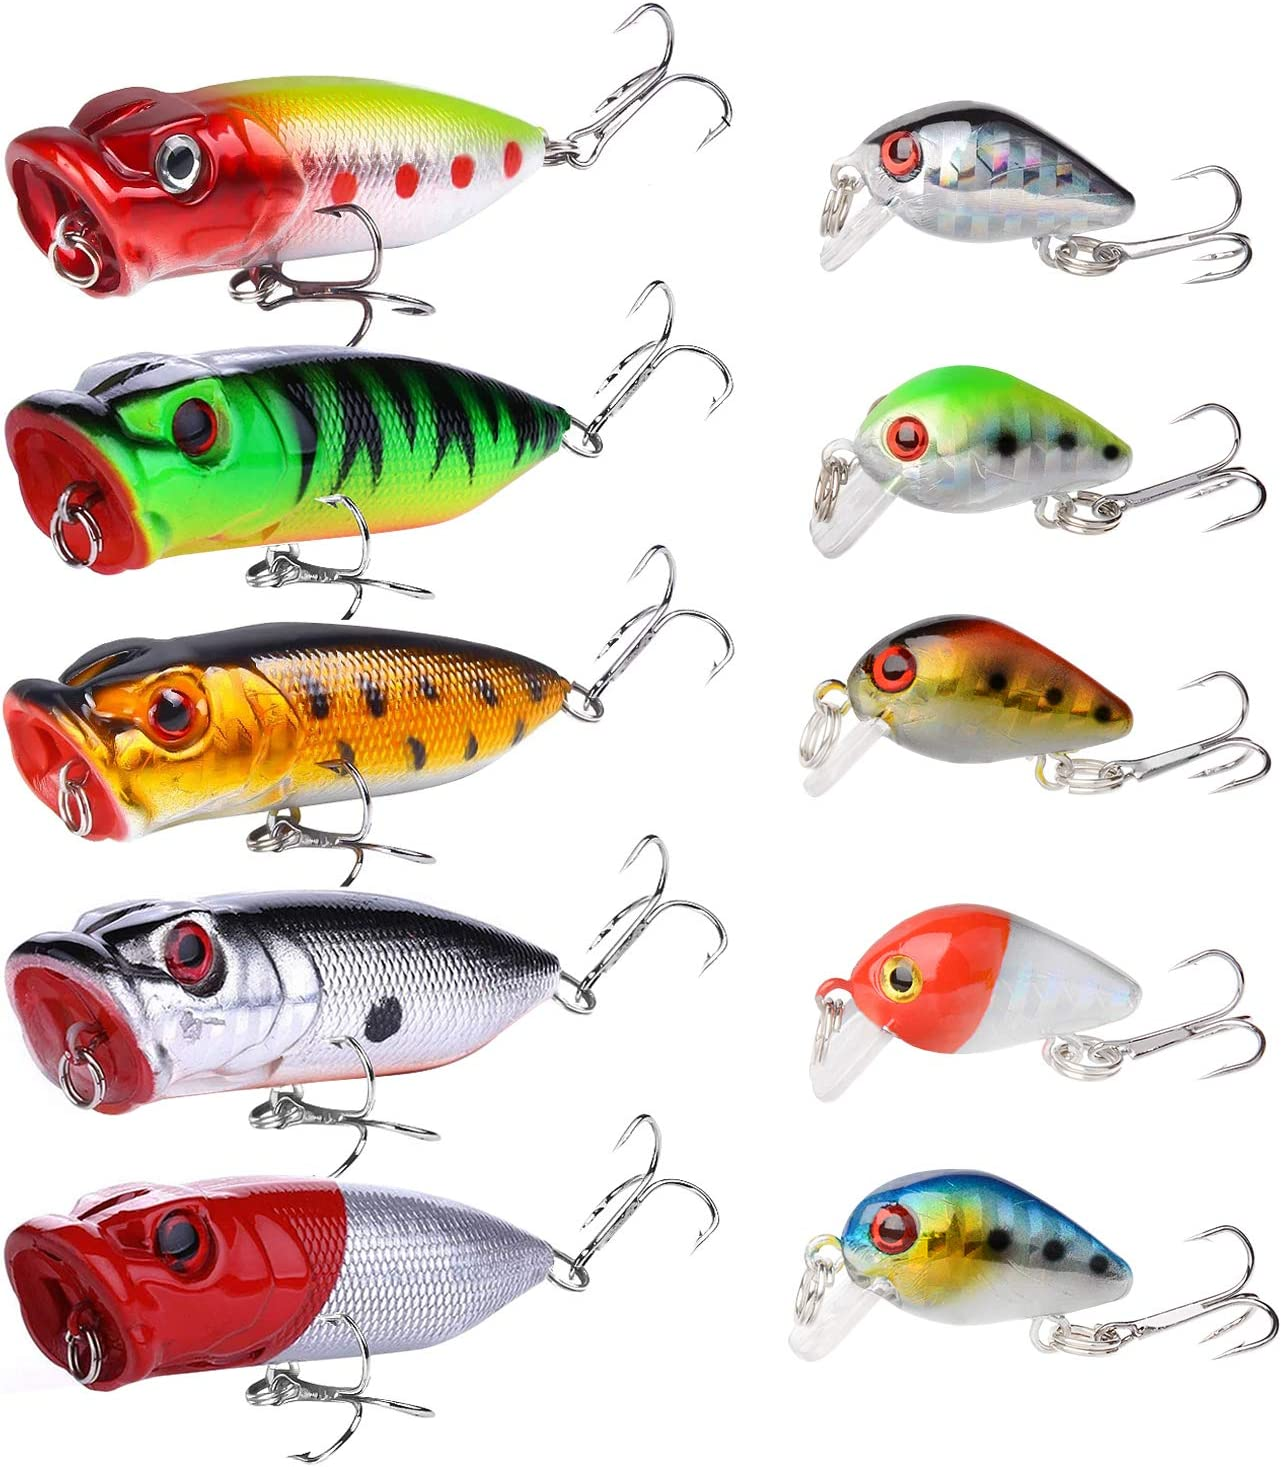 Lot 10pcs Fishing lures Top water Floating Popper Lure Hooks Bait Crankbait